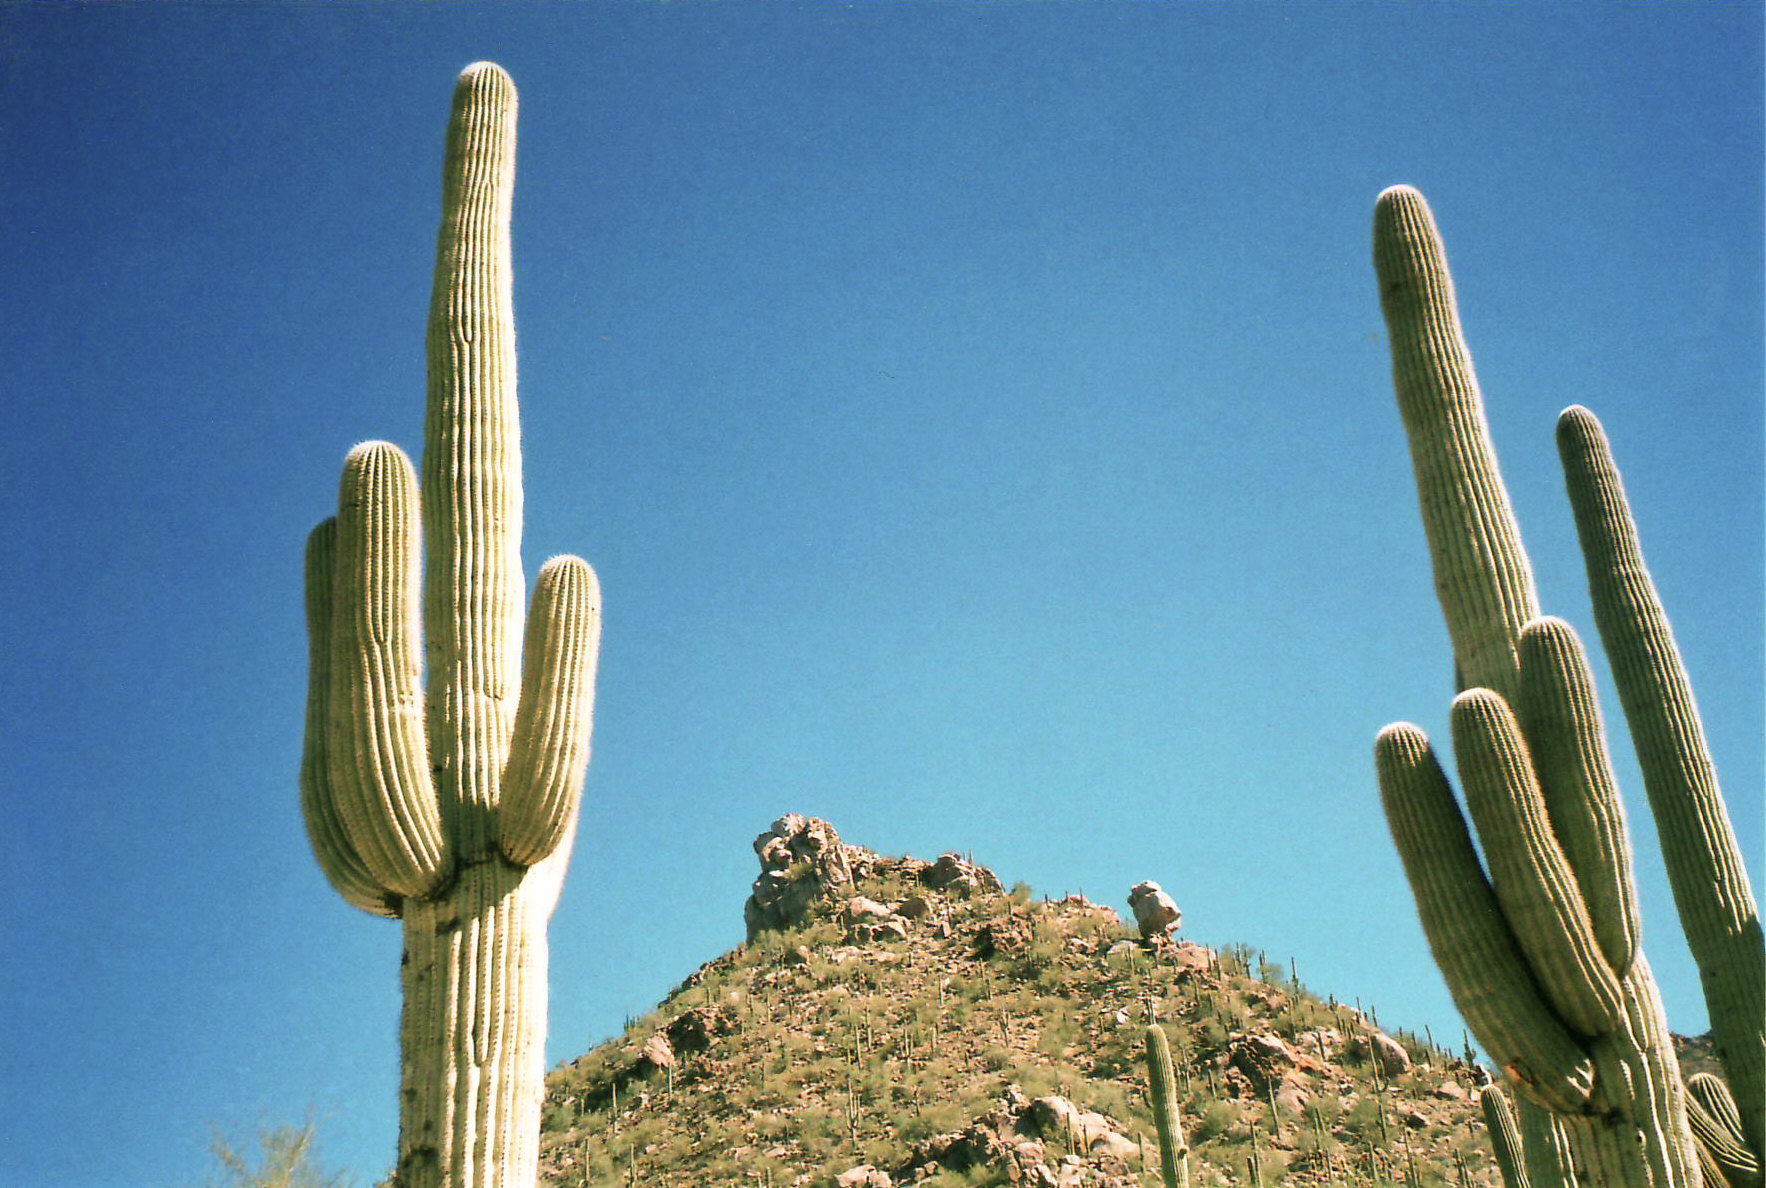 File saguaro cactus in wikimedia commons for Cactus imagenes